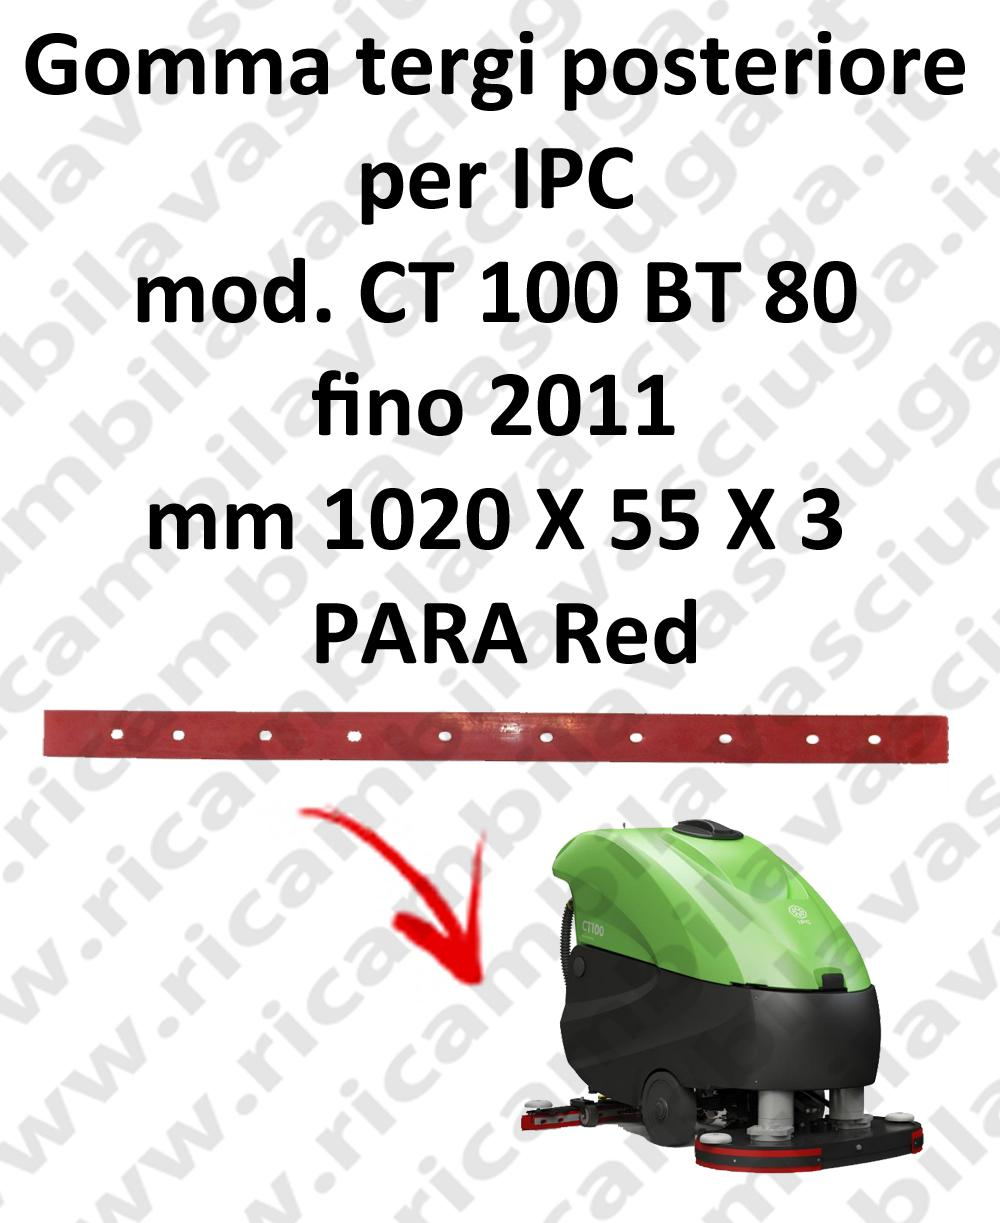 CT 100 BT 80 till 2011 squeegee rubber back for IPC